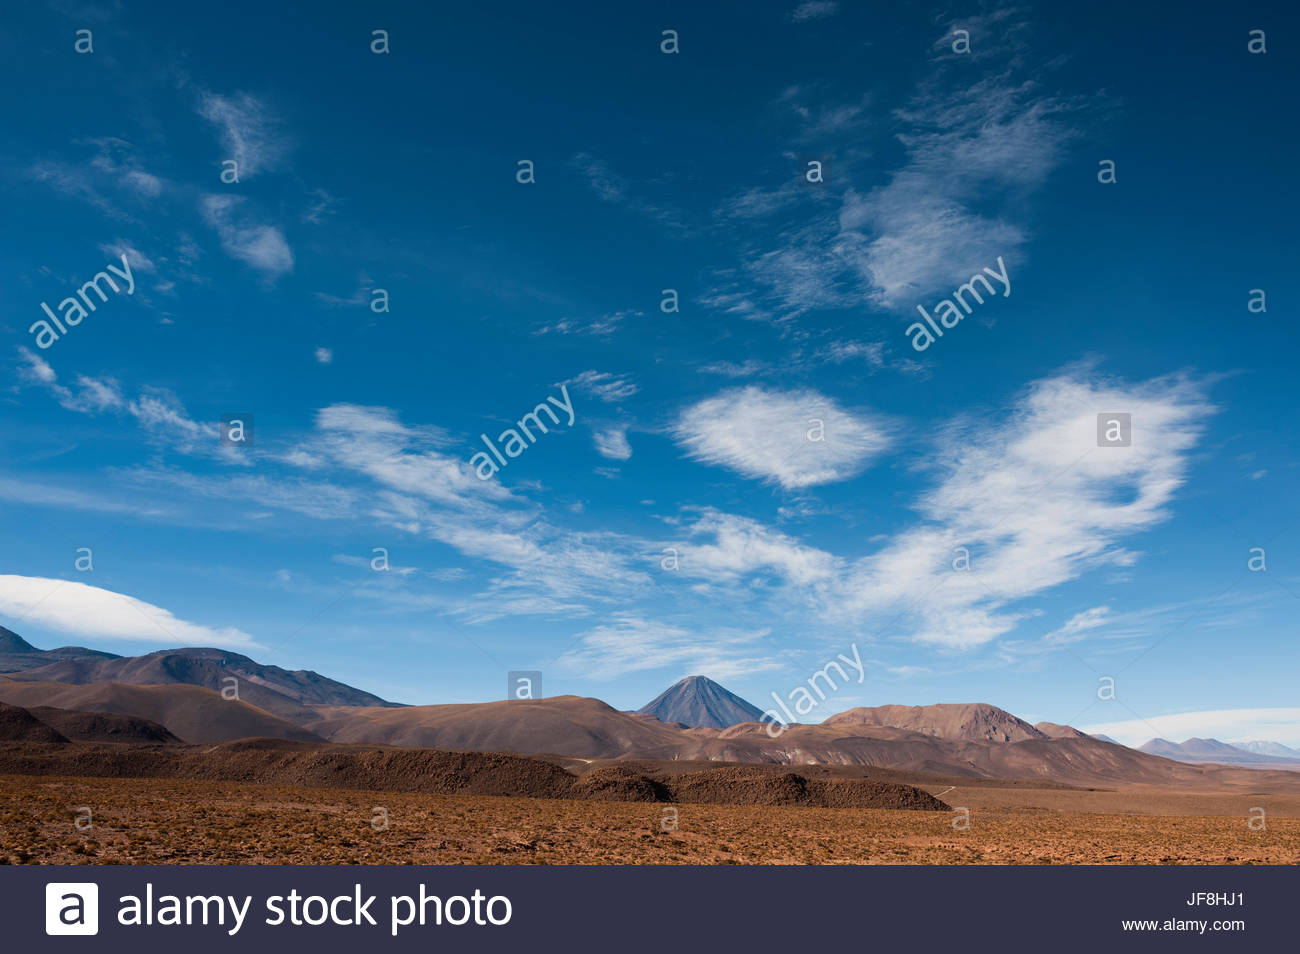 The Licancabur Volcano rises among peaks in the Andes Mountains. Stock Photo